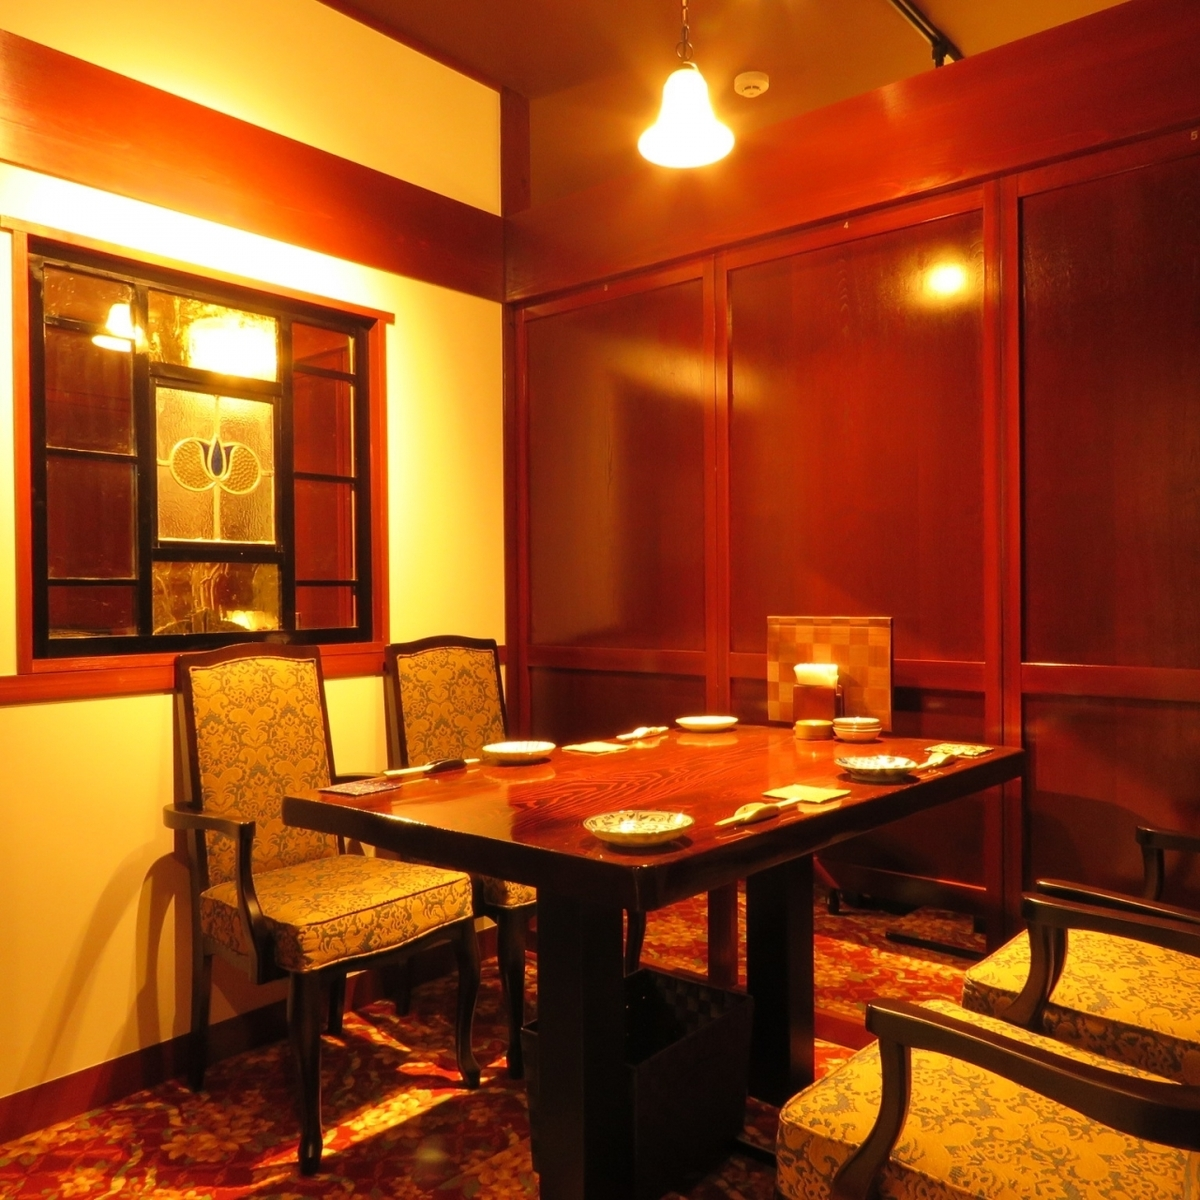 【Private space】 Private room to relax relaxedly